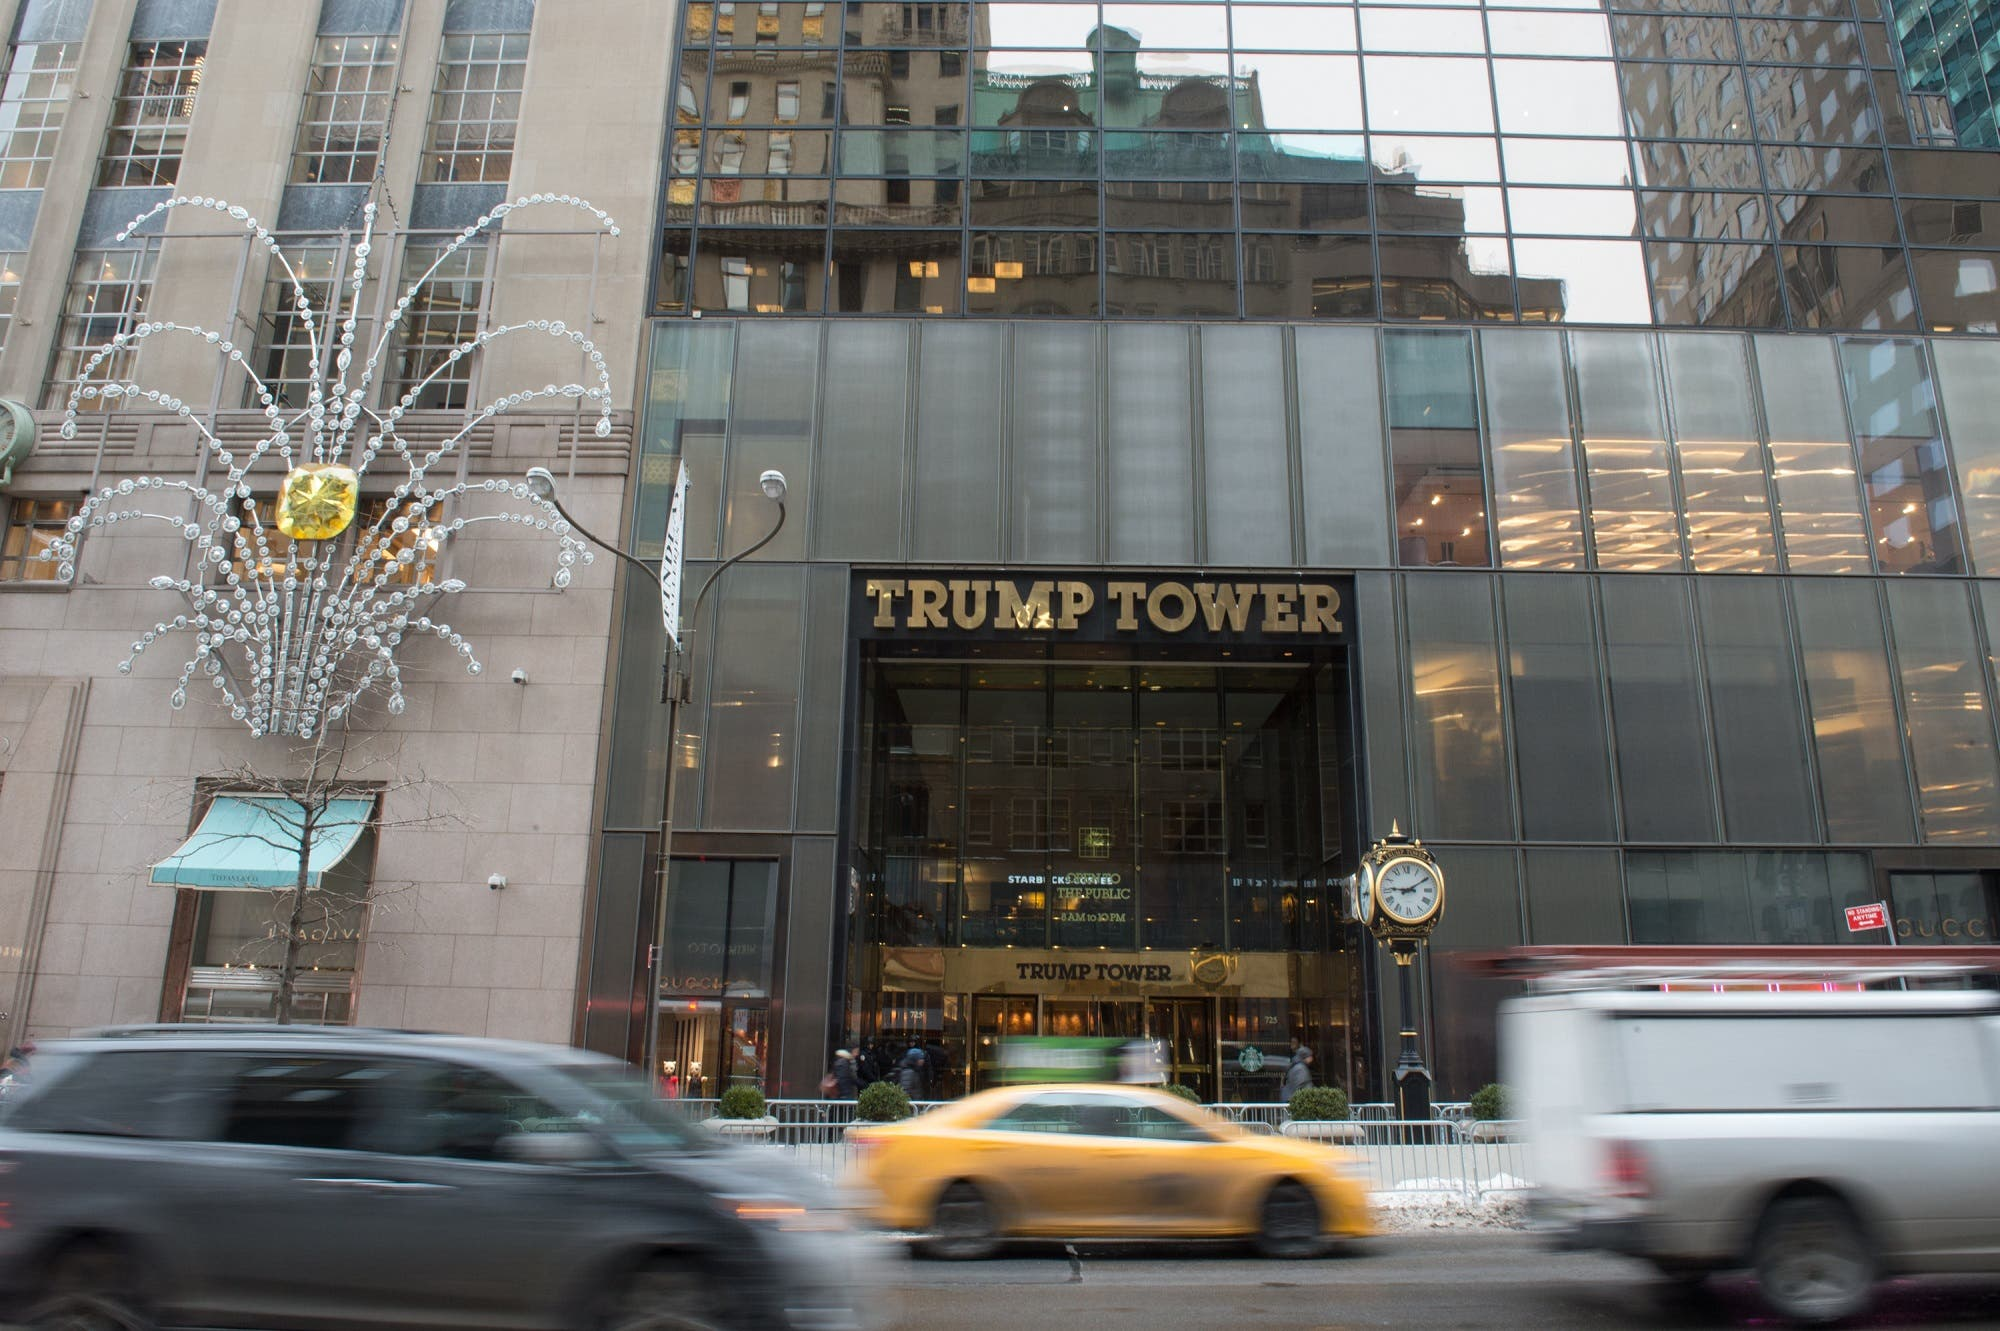 Cars drive past the front of Trump Tower on Fifth Avenue in New York on January 8, 2018. (AFP)